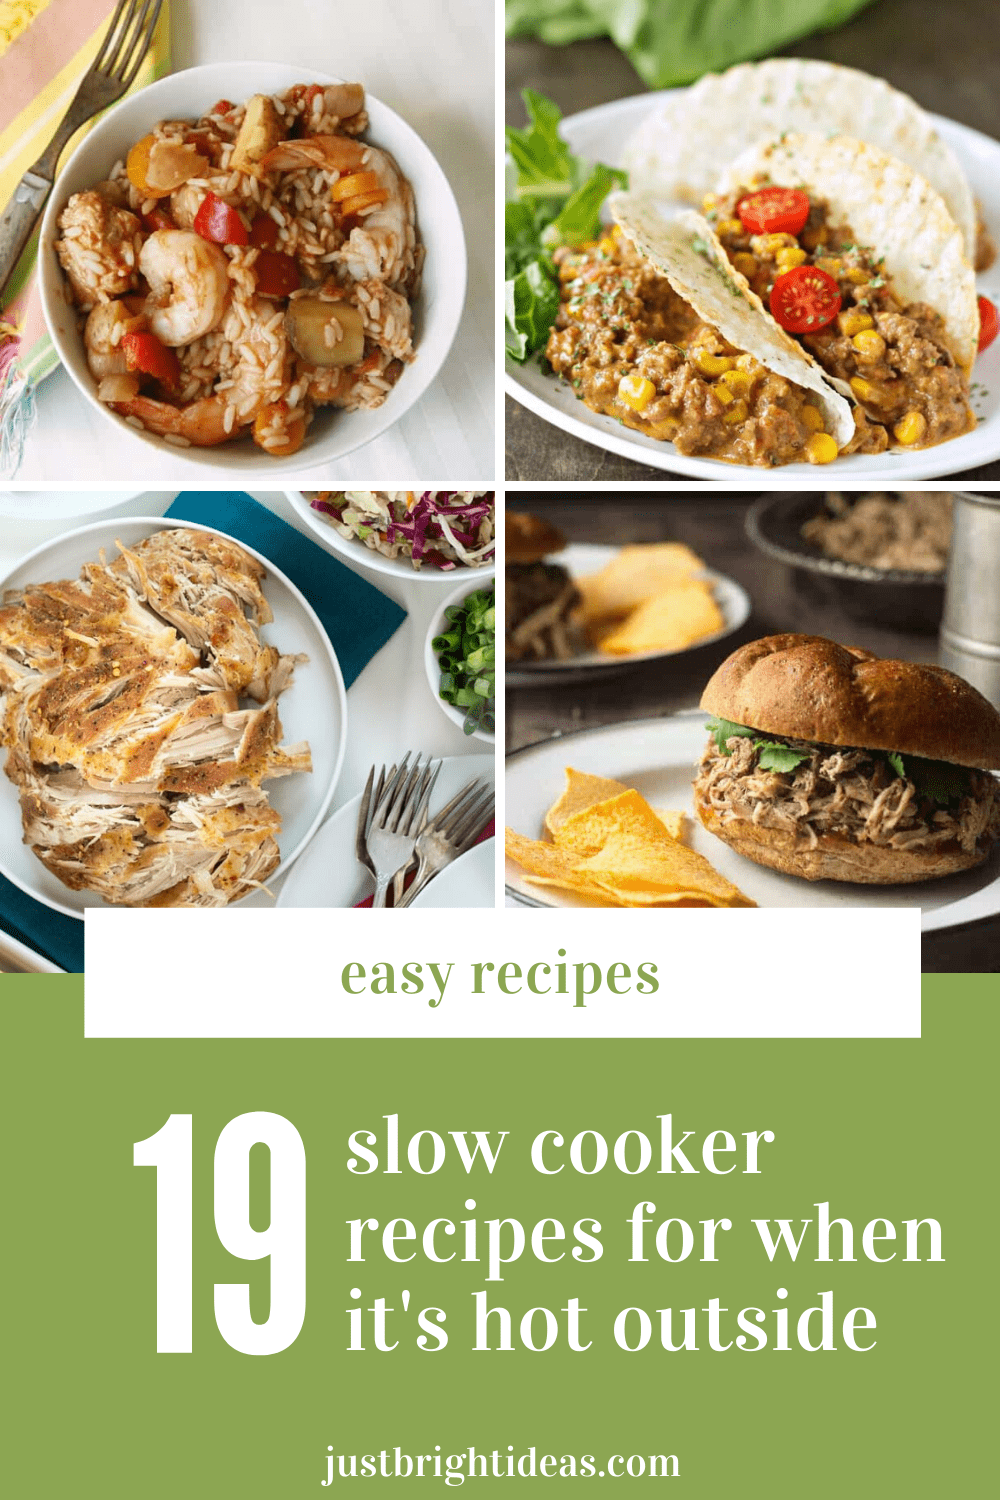 These summer slow cooker recipes are a must have on your meal planning rotation when it's hot outside